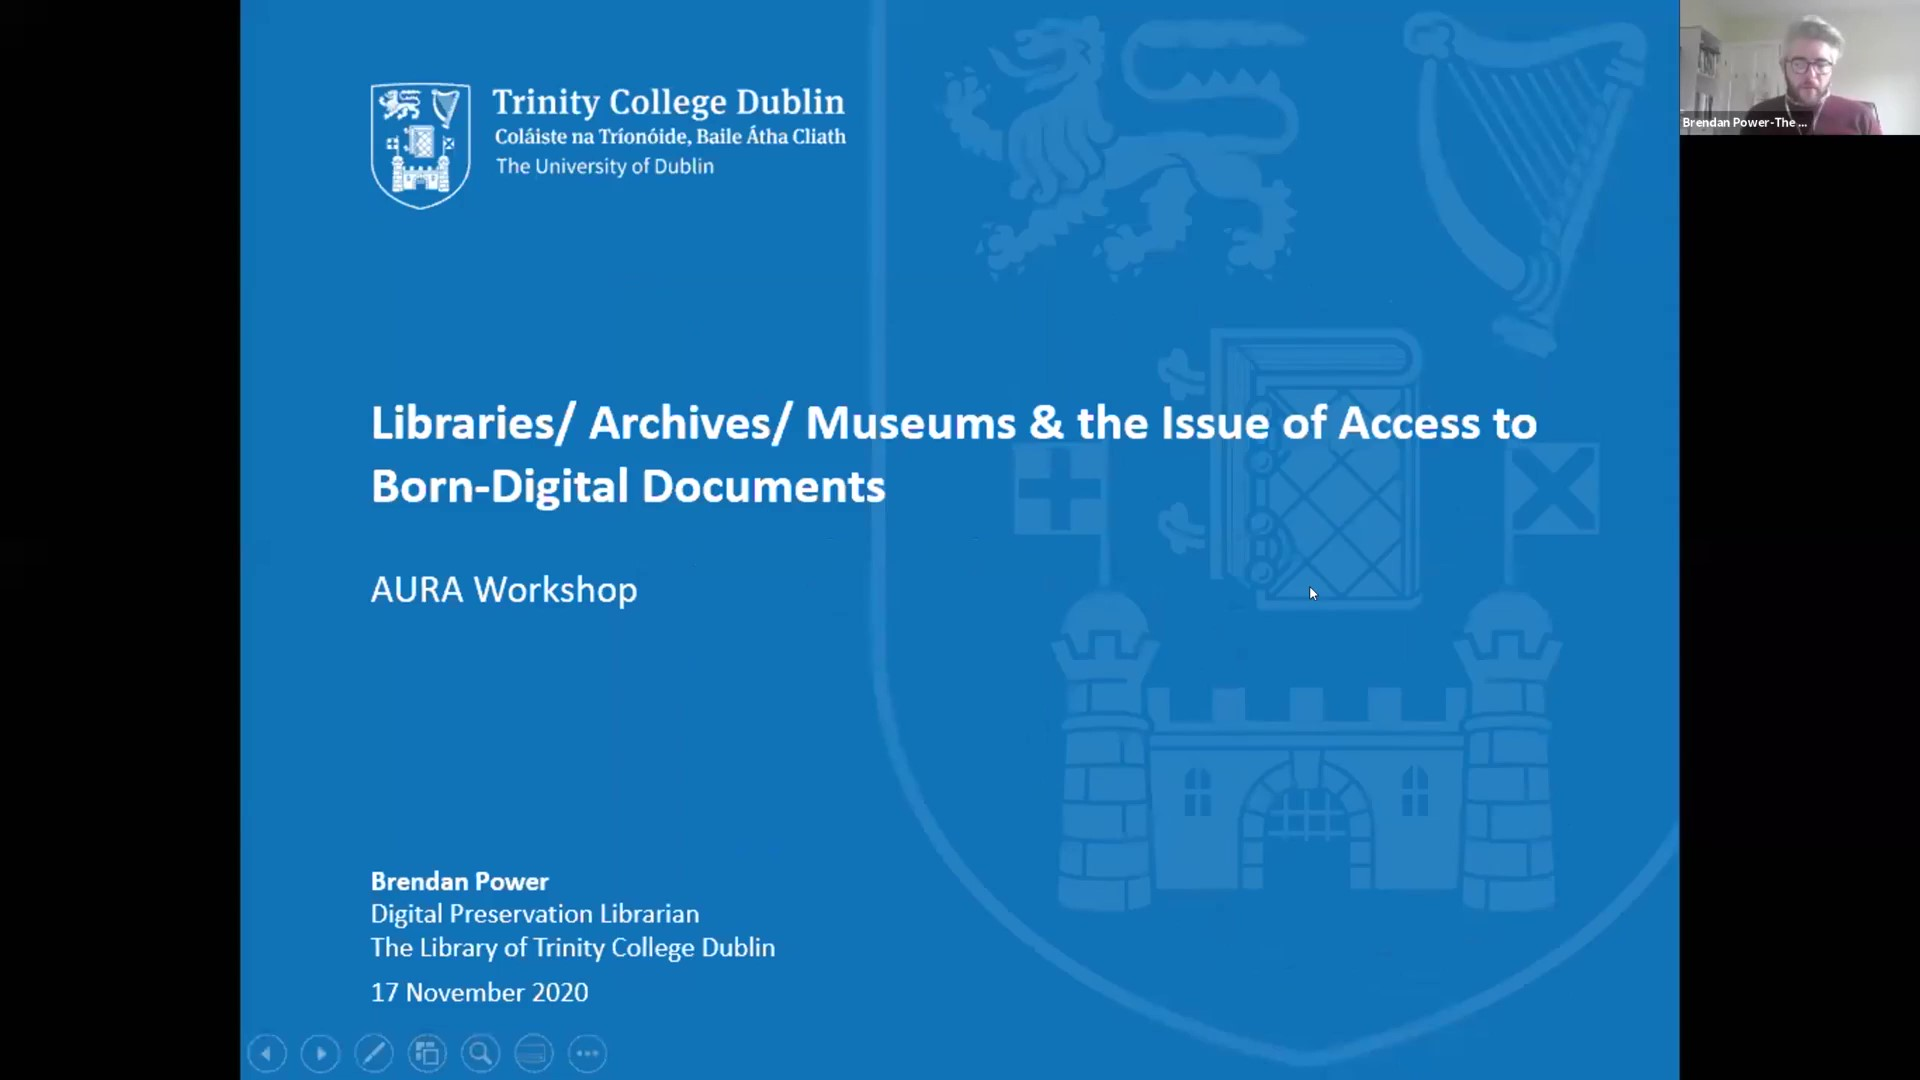 Workshop 1 – Brendan Power – Libraries/ Archives/ Museums & the Issue of Access to Born-Digital Documents